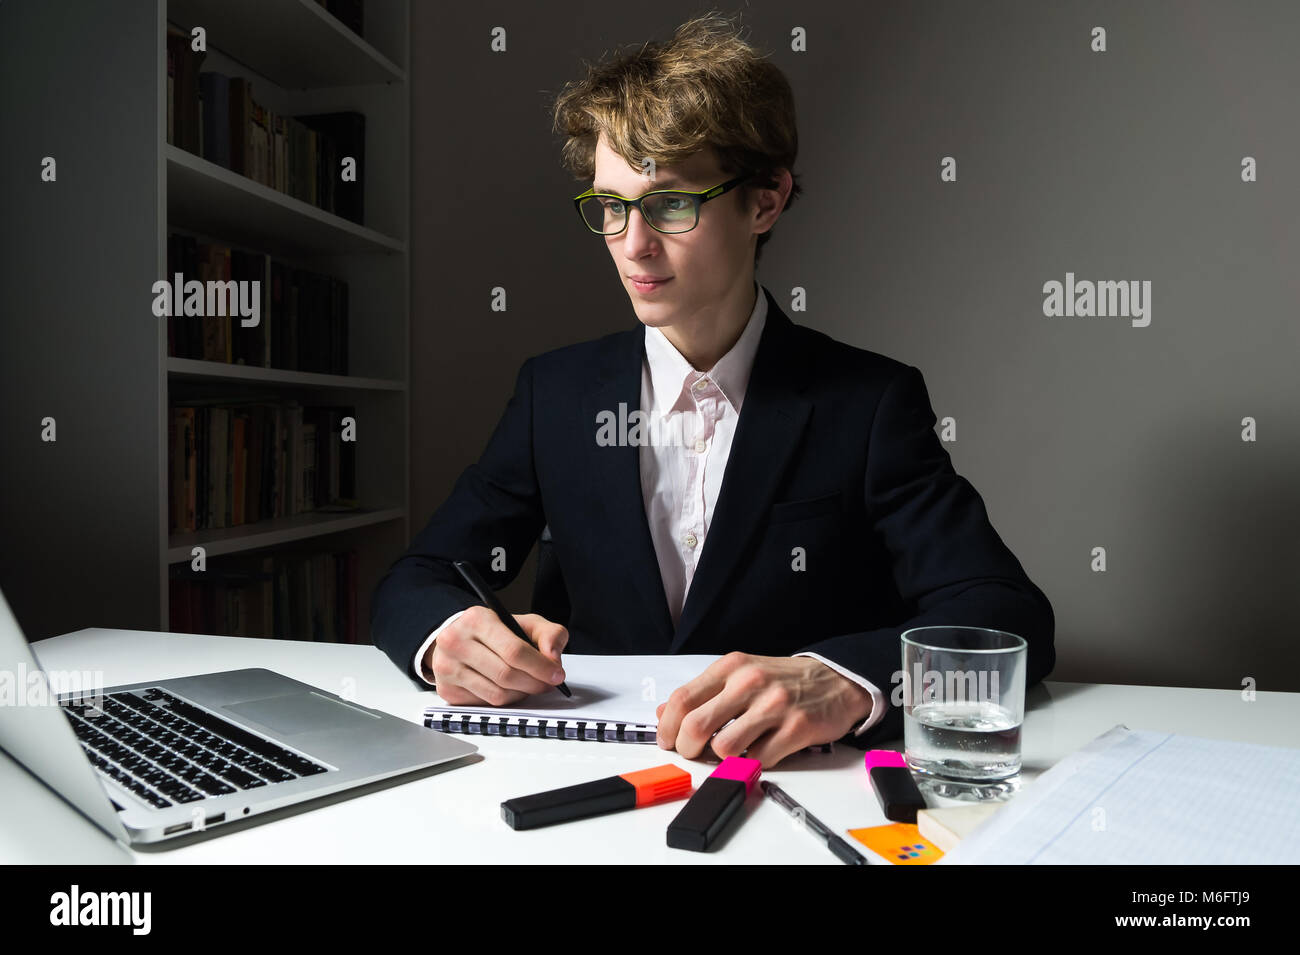 Determined and confident young businessman works late hours in office on project to meet deadline. - Stock Image